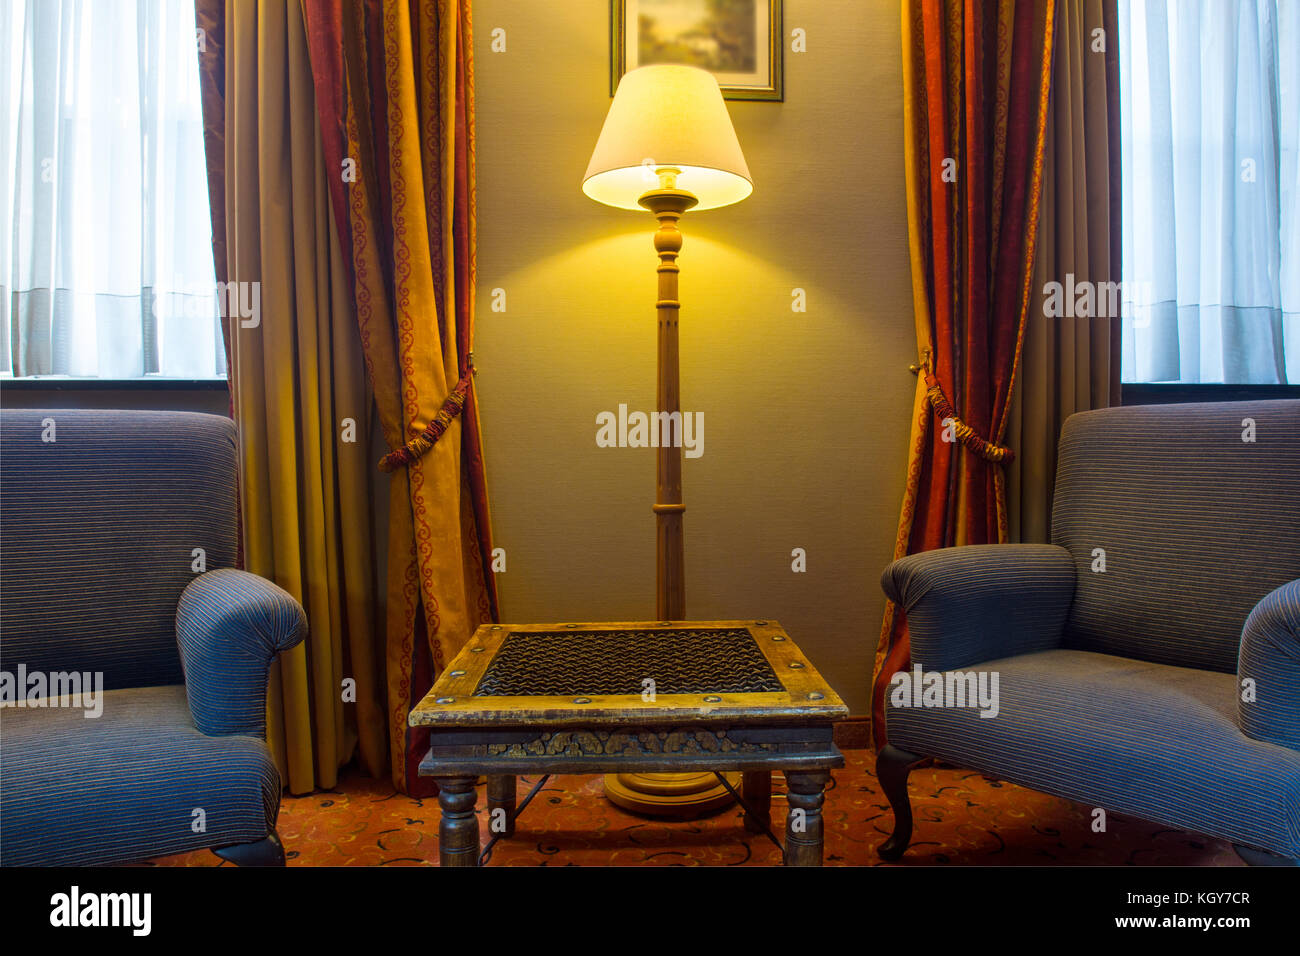 Traditional European Style Room With Chairs And Side Stand In A Living Floor Lamp Fully Decorated Windows Showing Warm Inviting